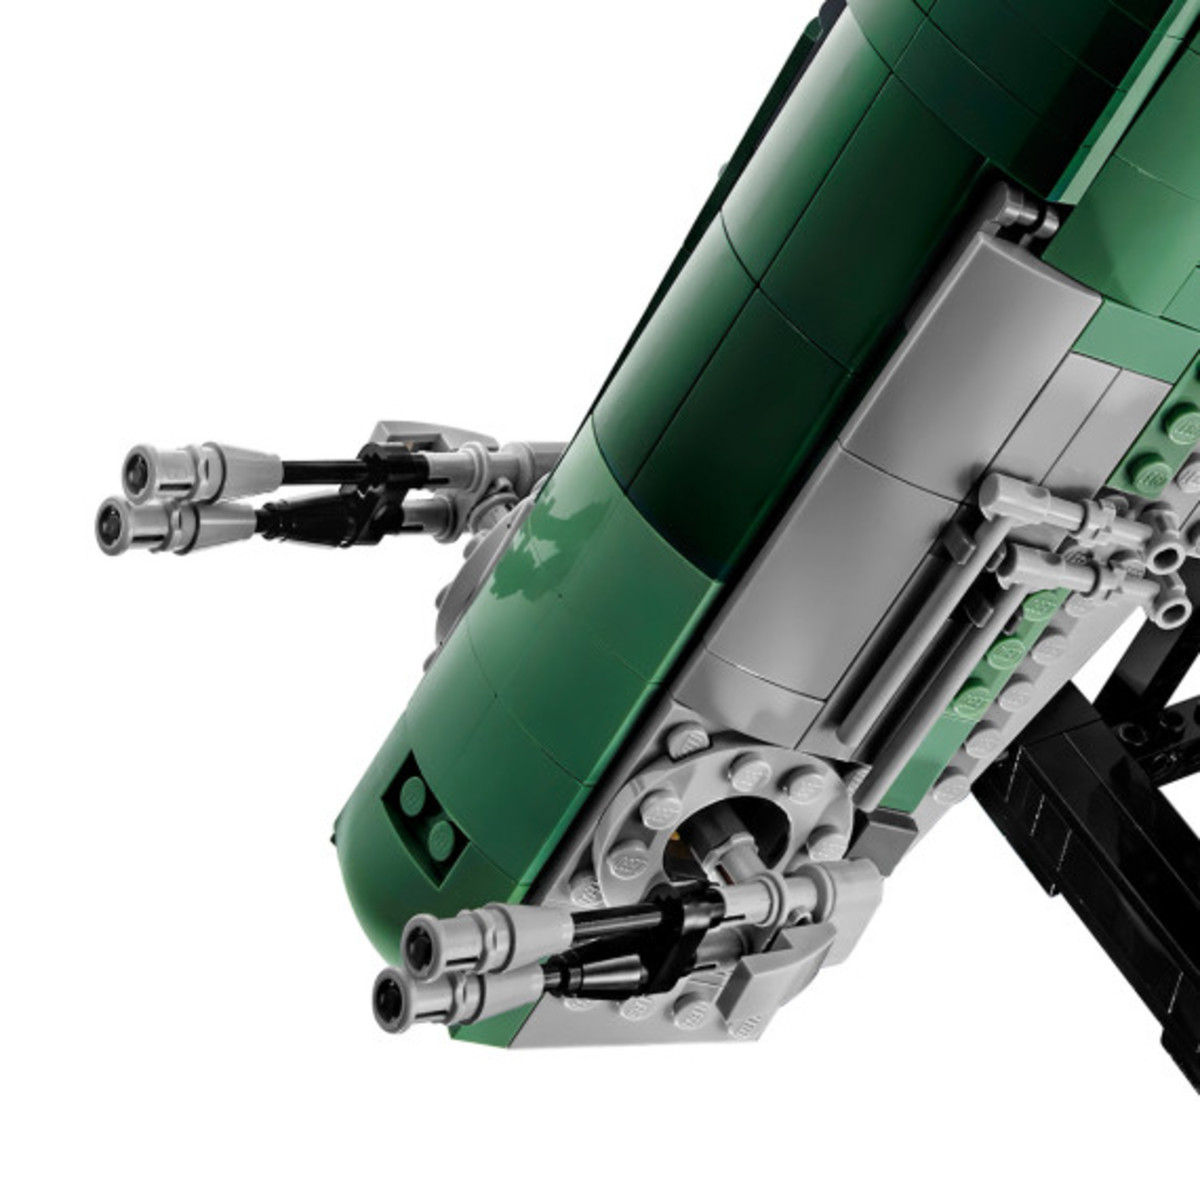 Star Wars x LEGO Ultimate Collector's Series: Boba Fett's Slave I Kit | Release Info - 26